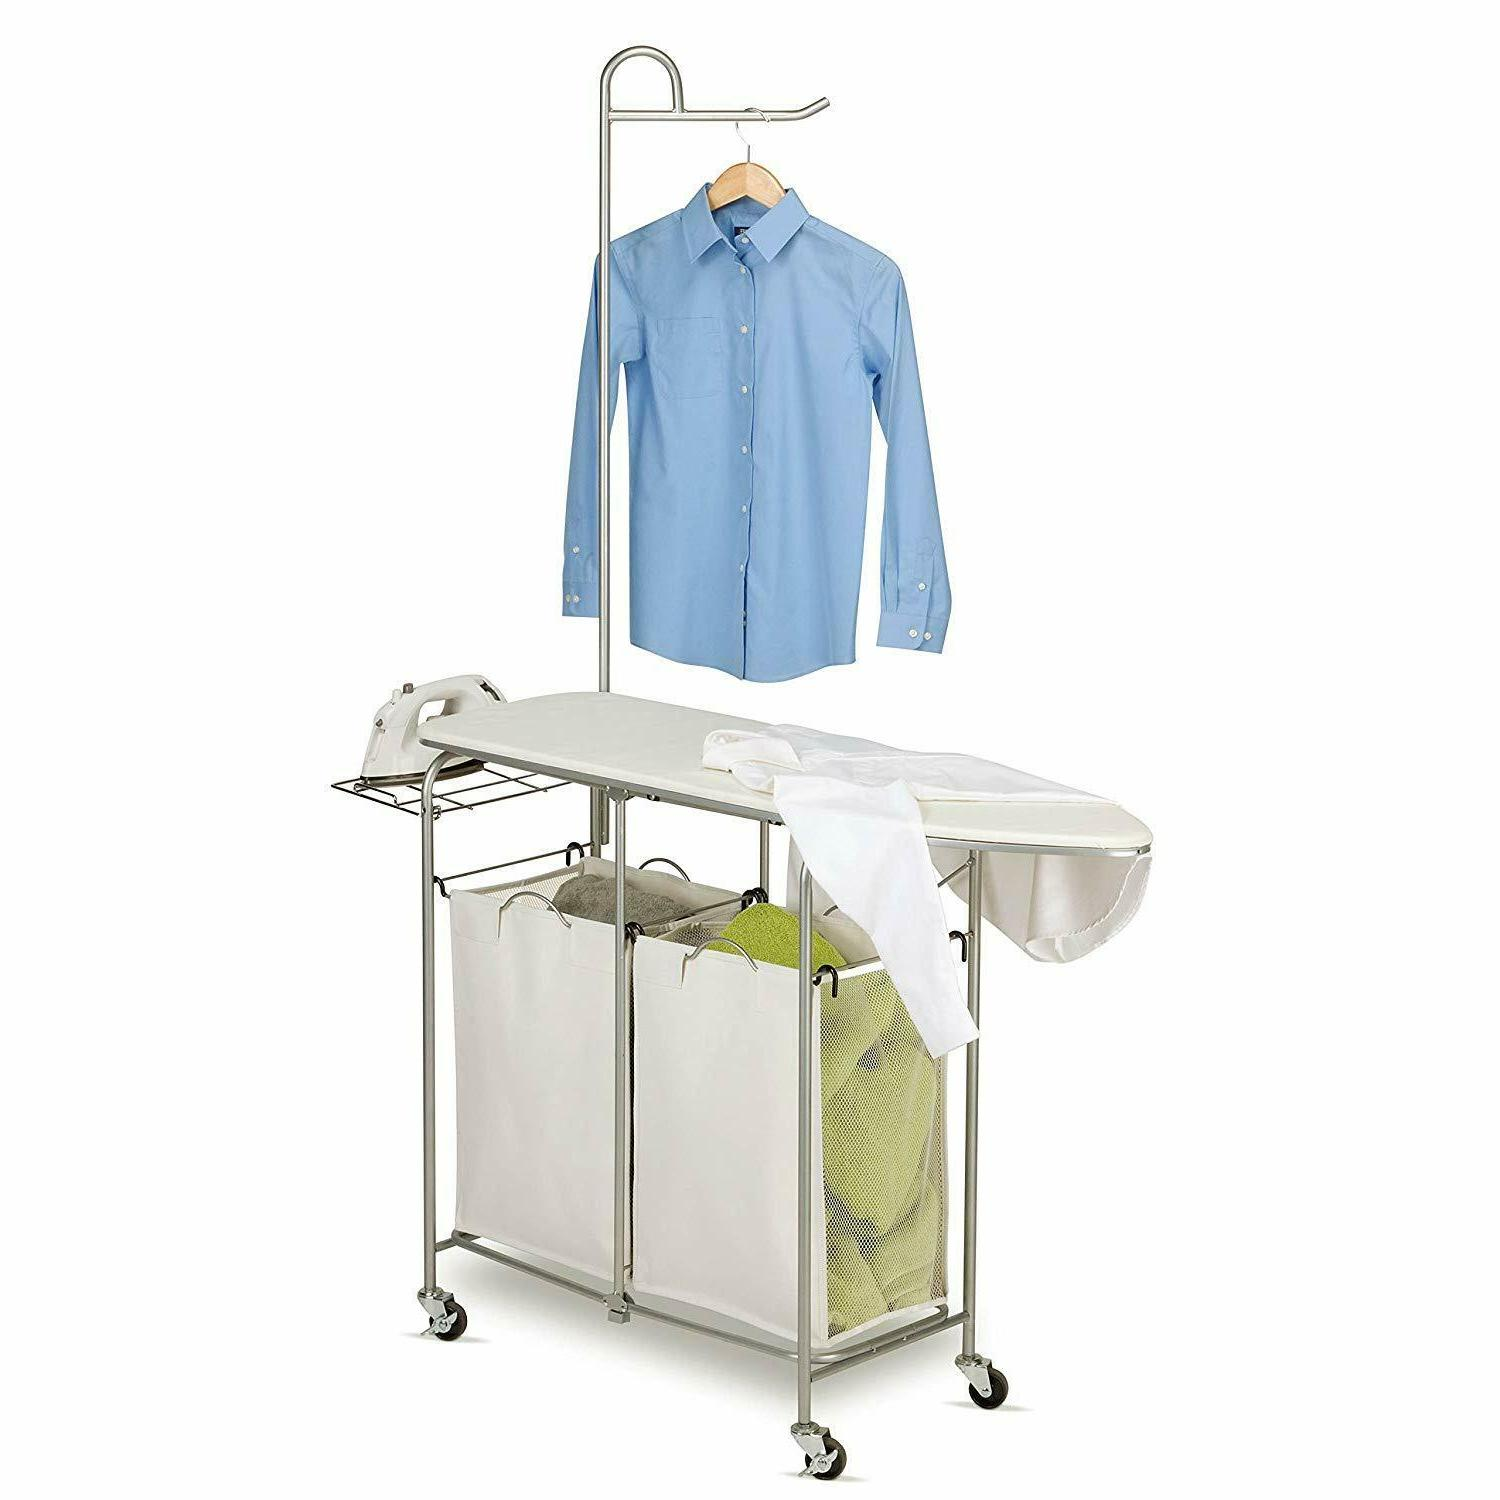 Laundry Sorter Bins Hamper Storage with Ironing Board Clothe